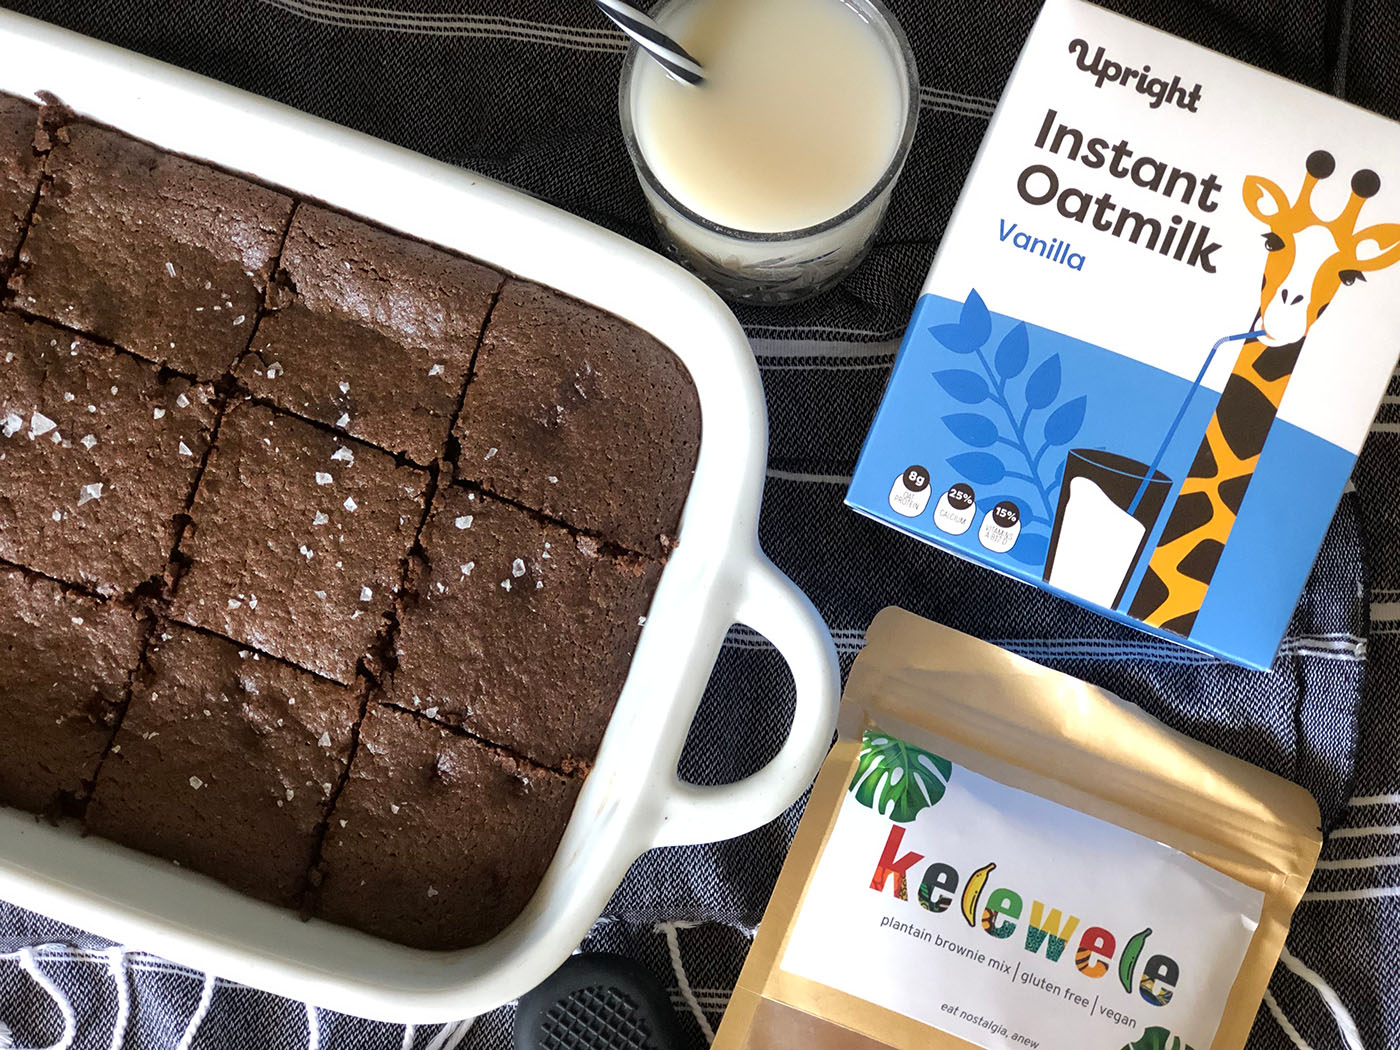 vegan brownies made with Upright instant powdered oatmilk